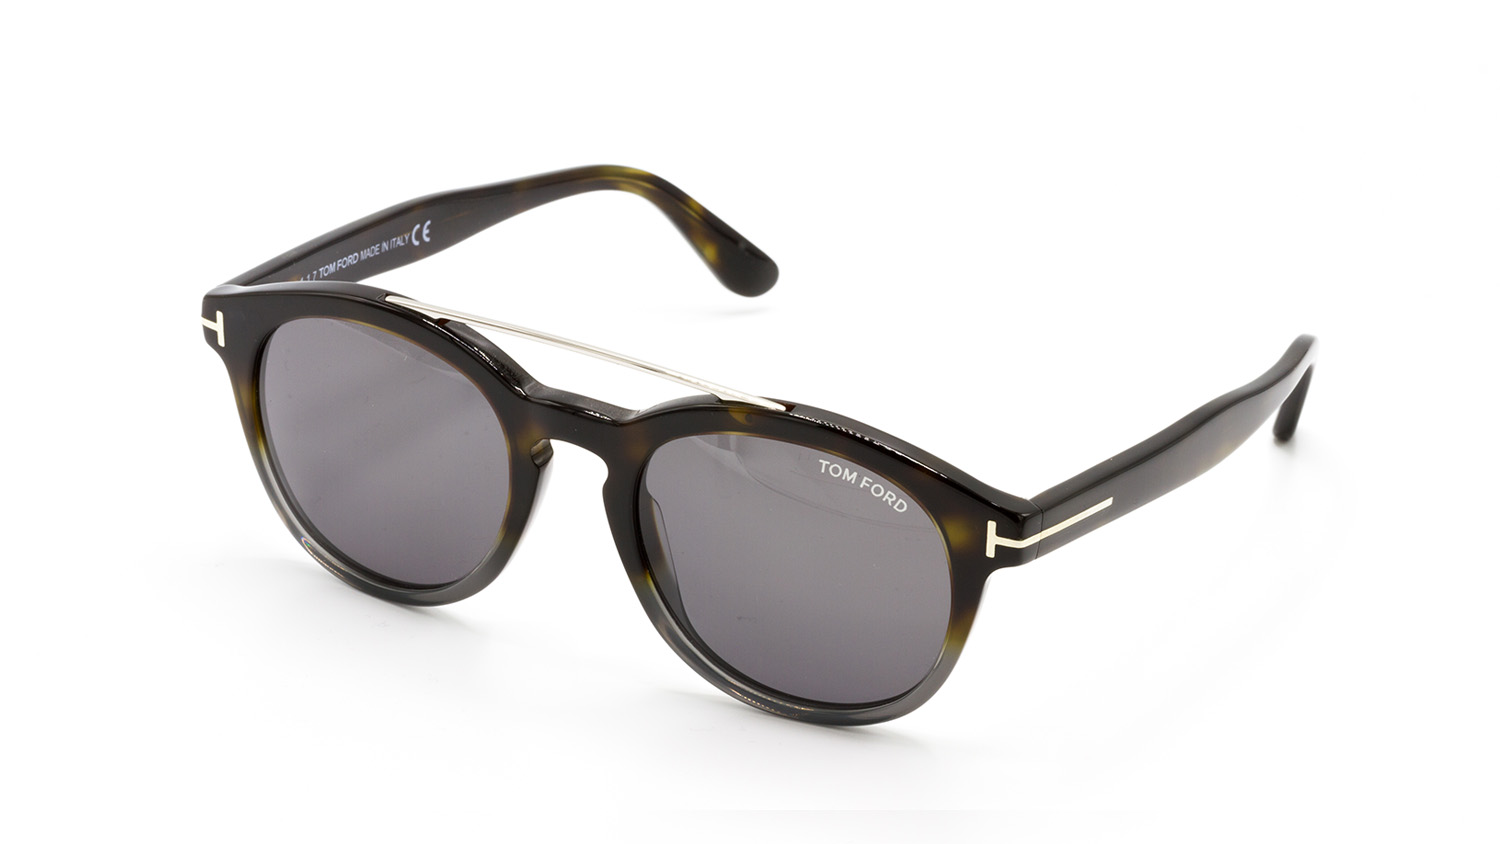 254a725c5c4cb6 Tom Ford TF515   Optikstudio   Votre Opticien en Moselle